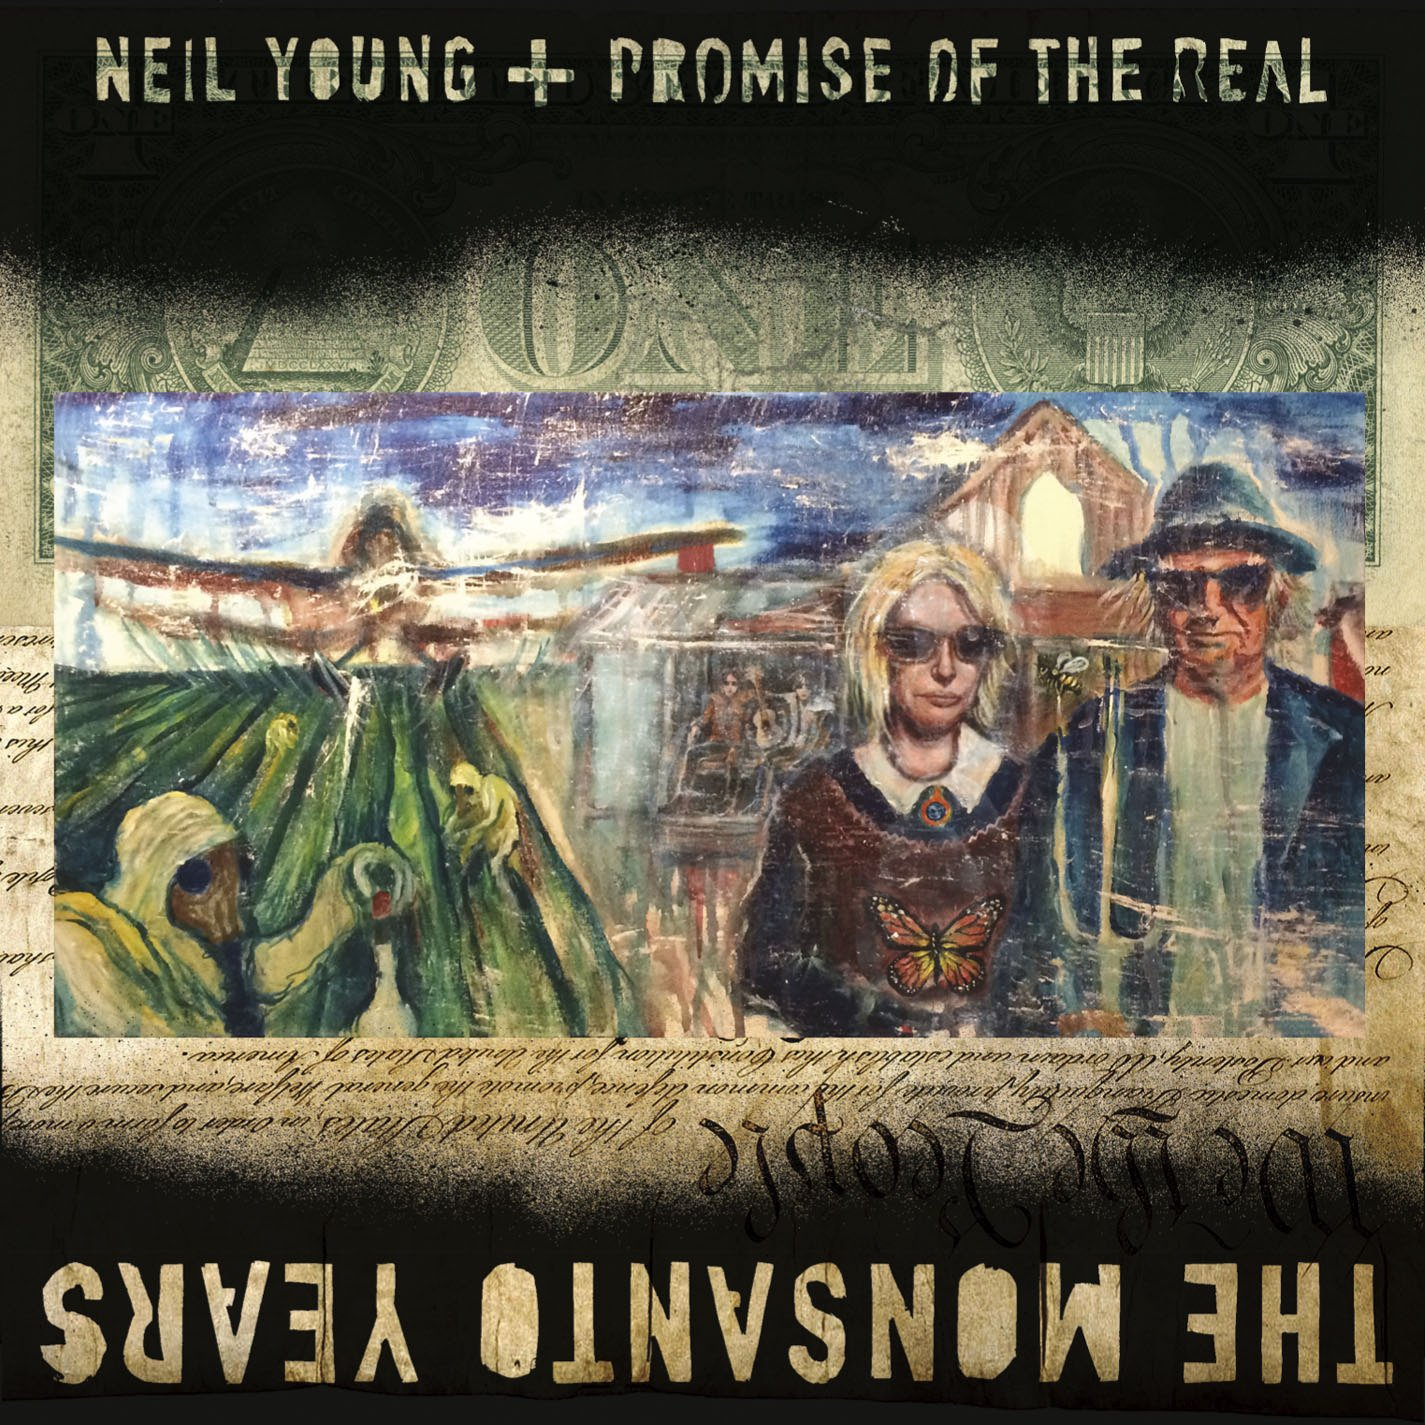 The Monsanto Years (CD/DVD) нил янг promise of the real neil young promise of the real the monsanto years cd dvd